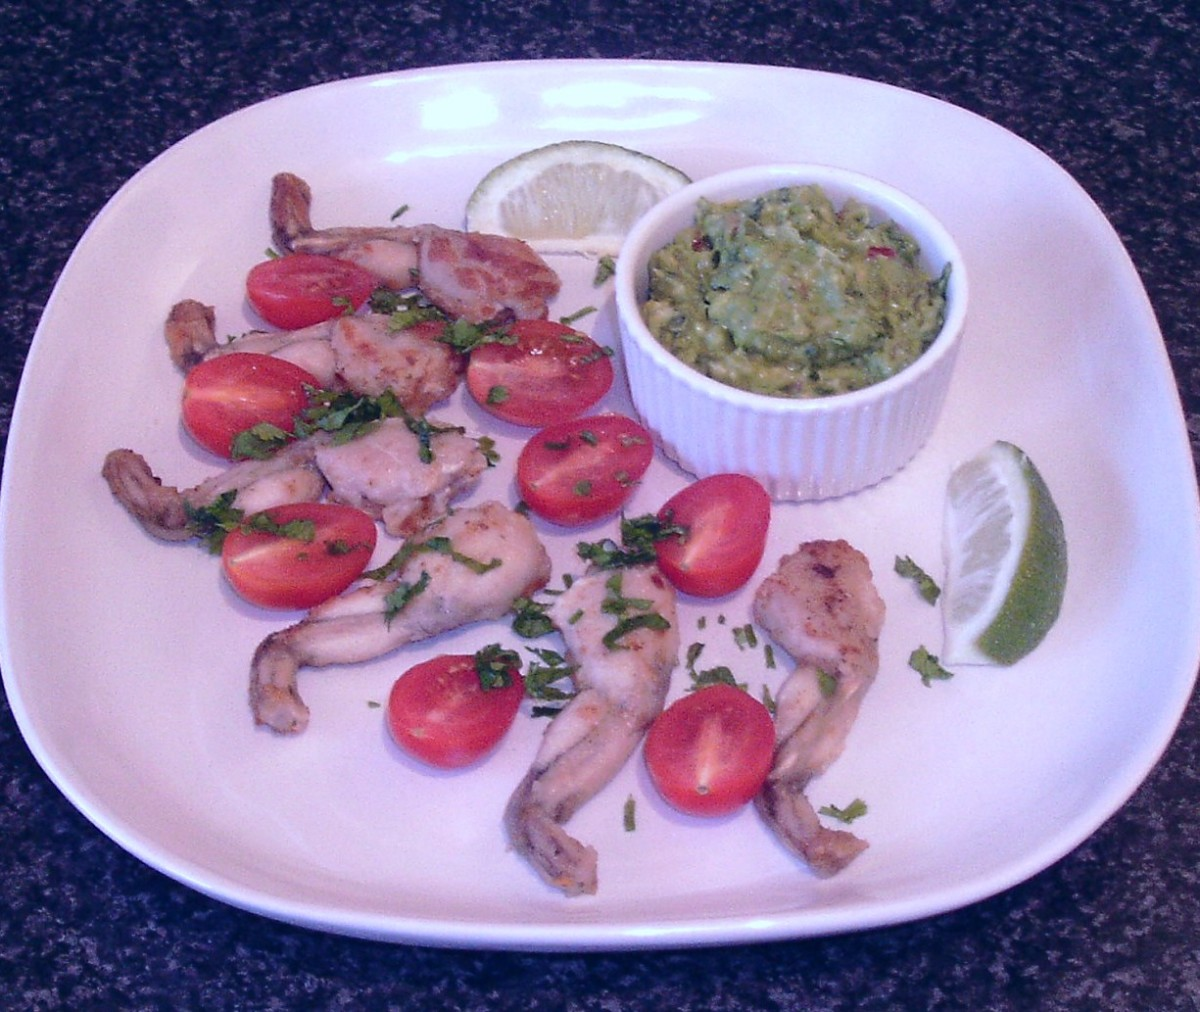 Fajitas spiced frogs' legs are served with a guacamole dip